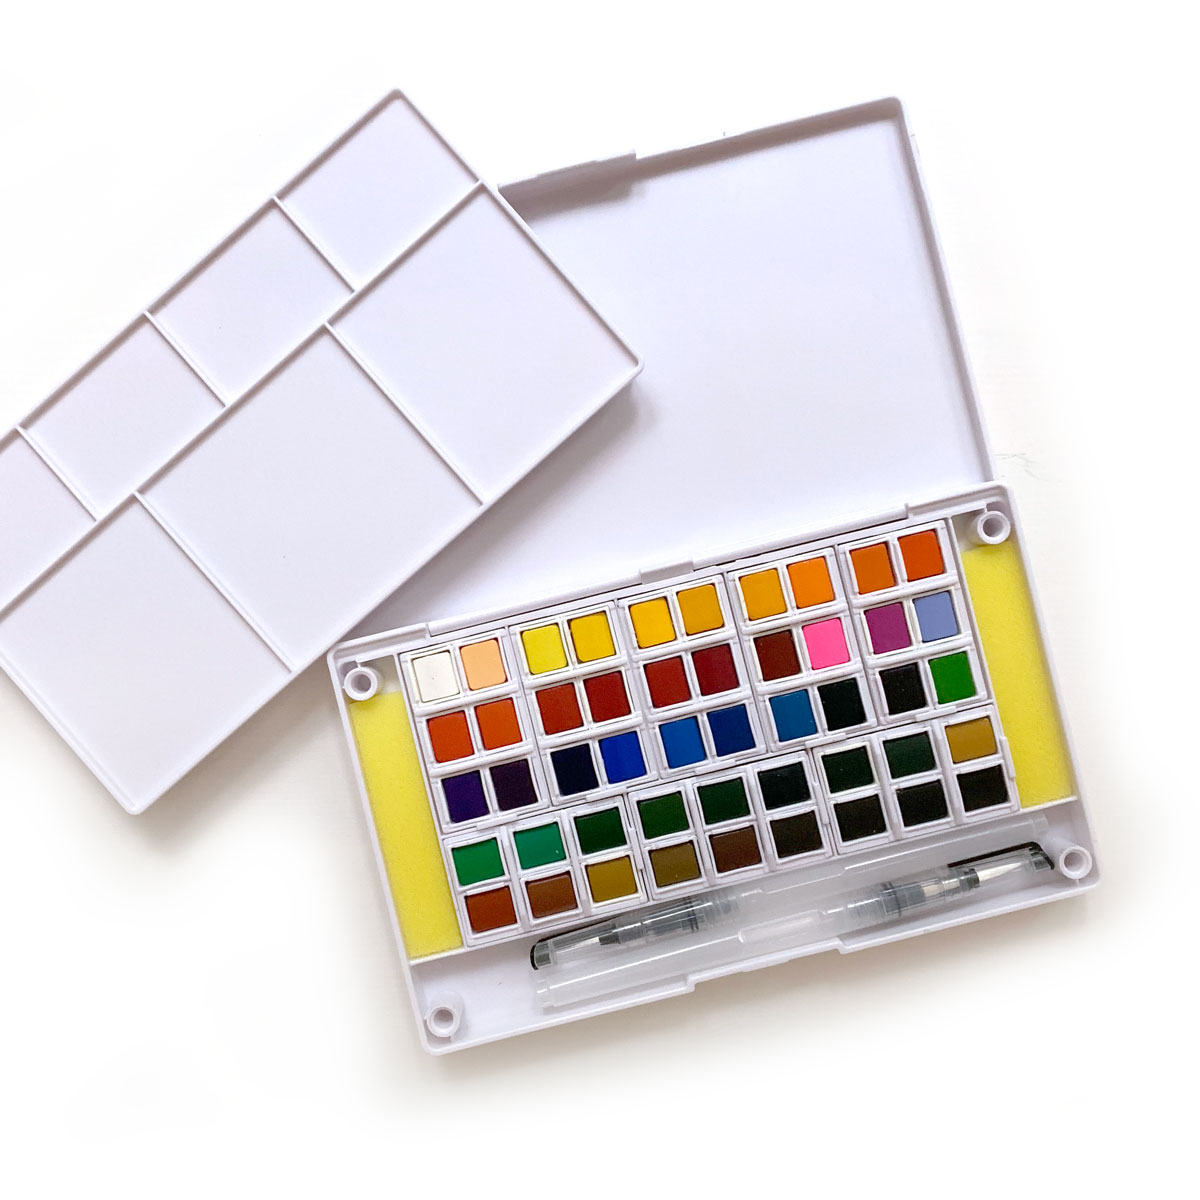 Artify Watercolor Field Sketch Set:  I researched a couple of options and picked this kit because it fit the bill for what I wanted for my trip. It has lots of colors, isn't too big, had a removable palette for blending, and room for water brushed to fit inside along with sponges. (Plus, this price was right for someone who doesn't know what they're doing!)